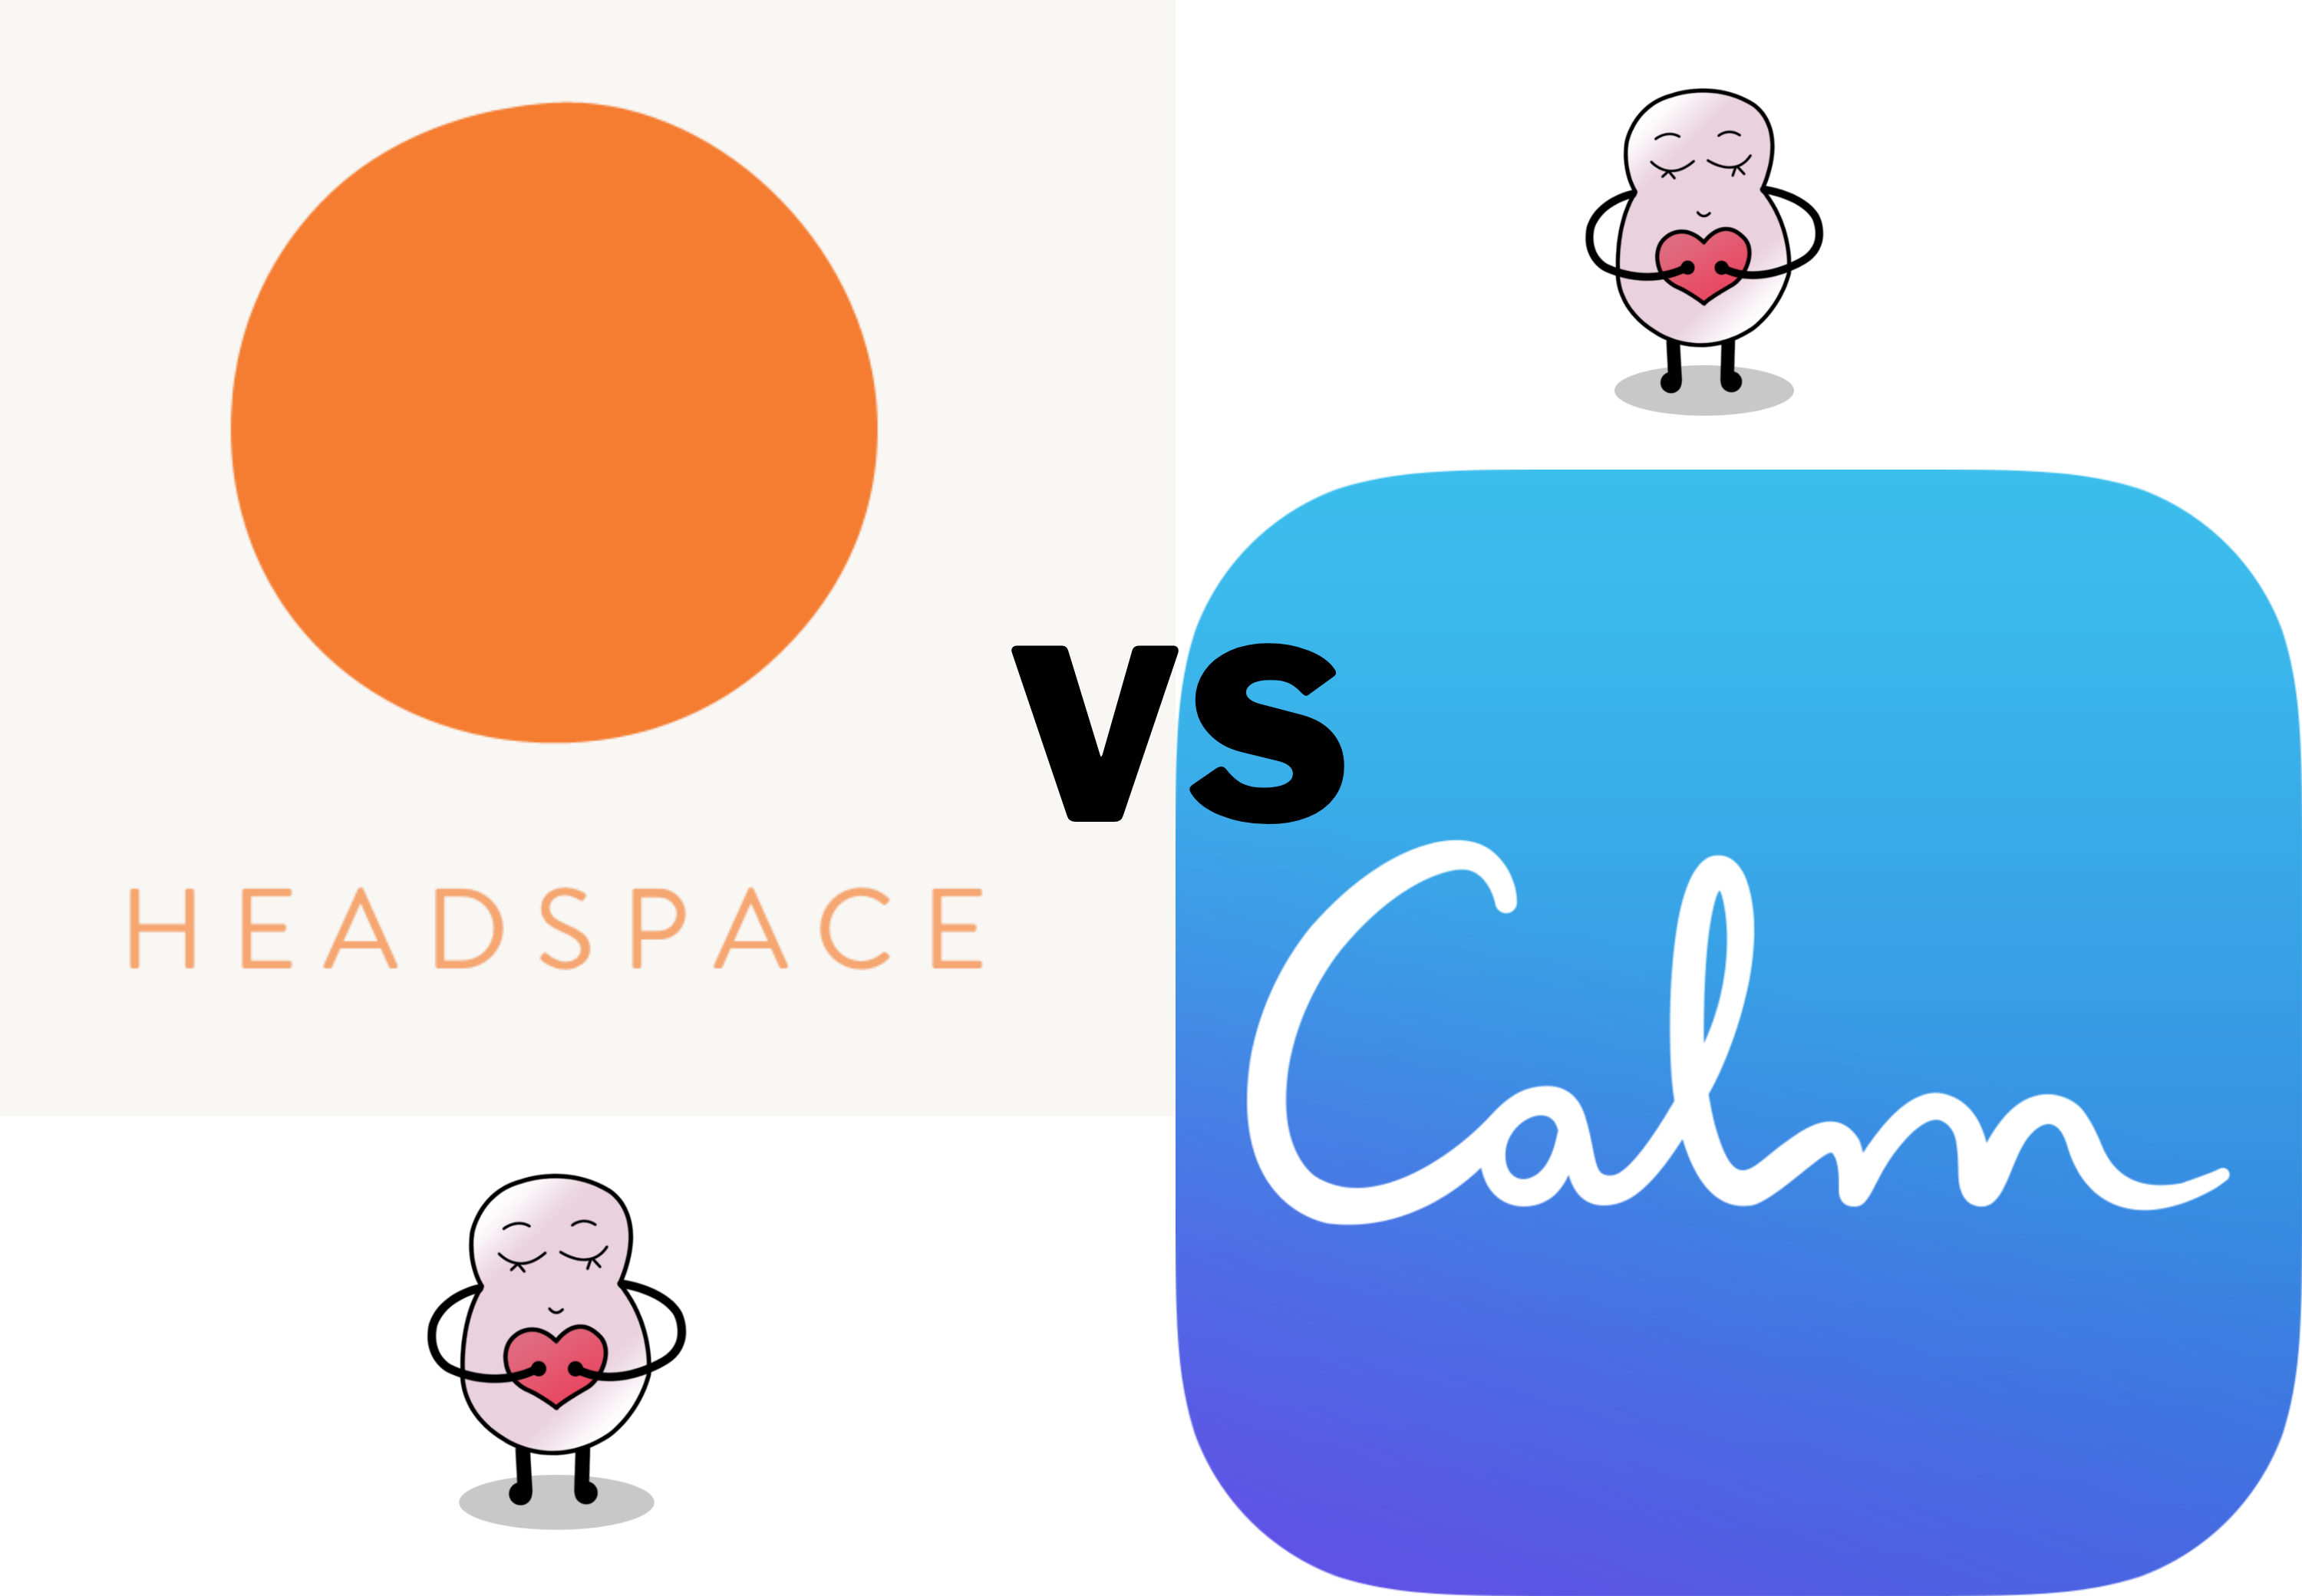 headspace vs calm which meditation app is best wellbean blog headspace vs calm which meditation app